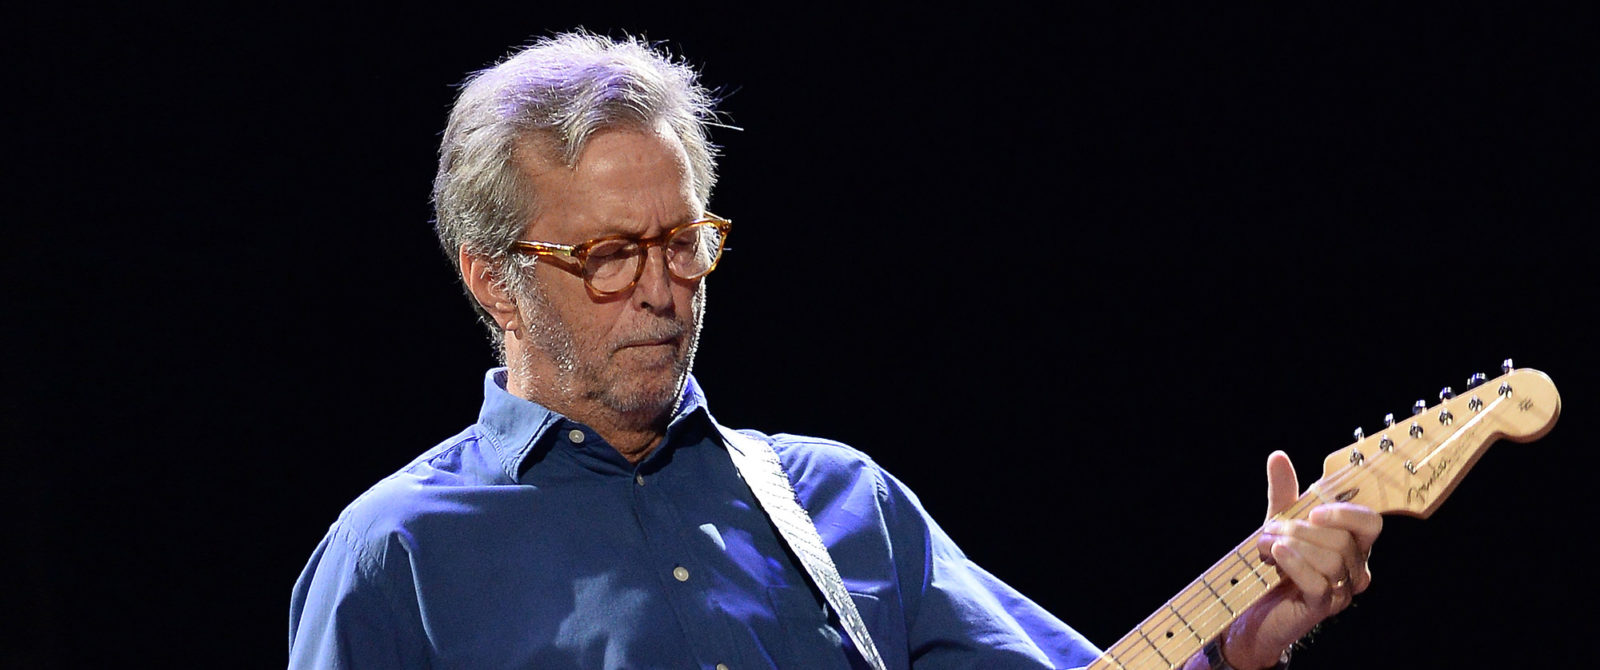 360º Film Marketing - Eric Clapton